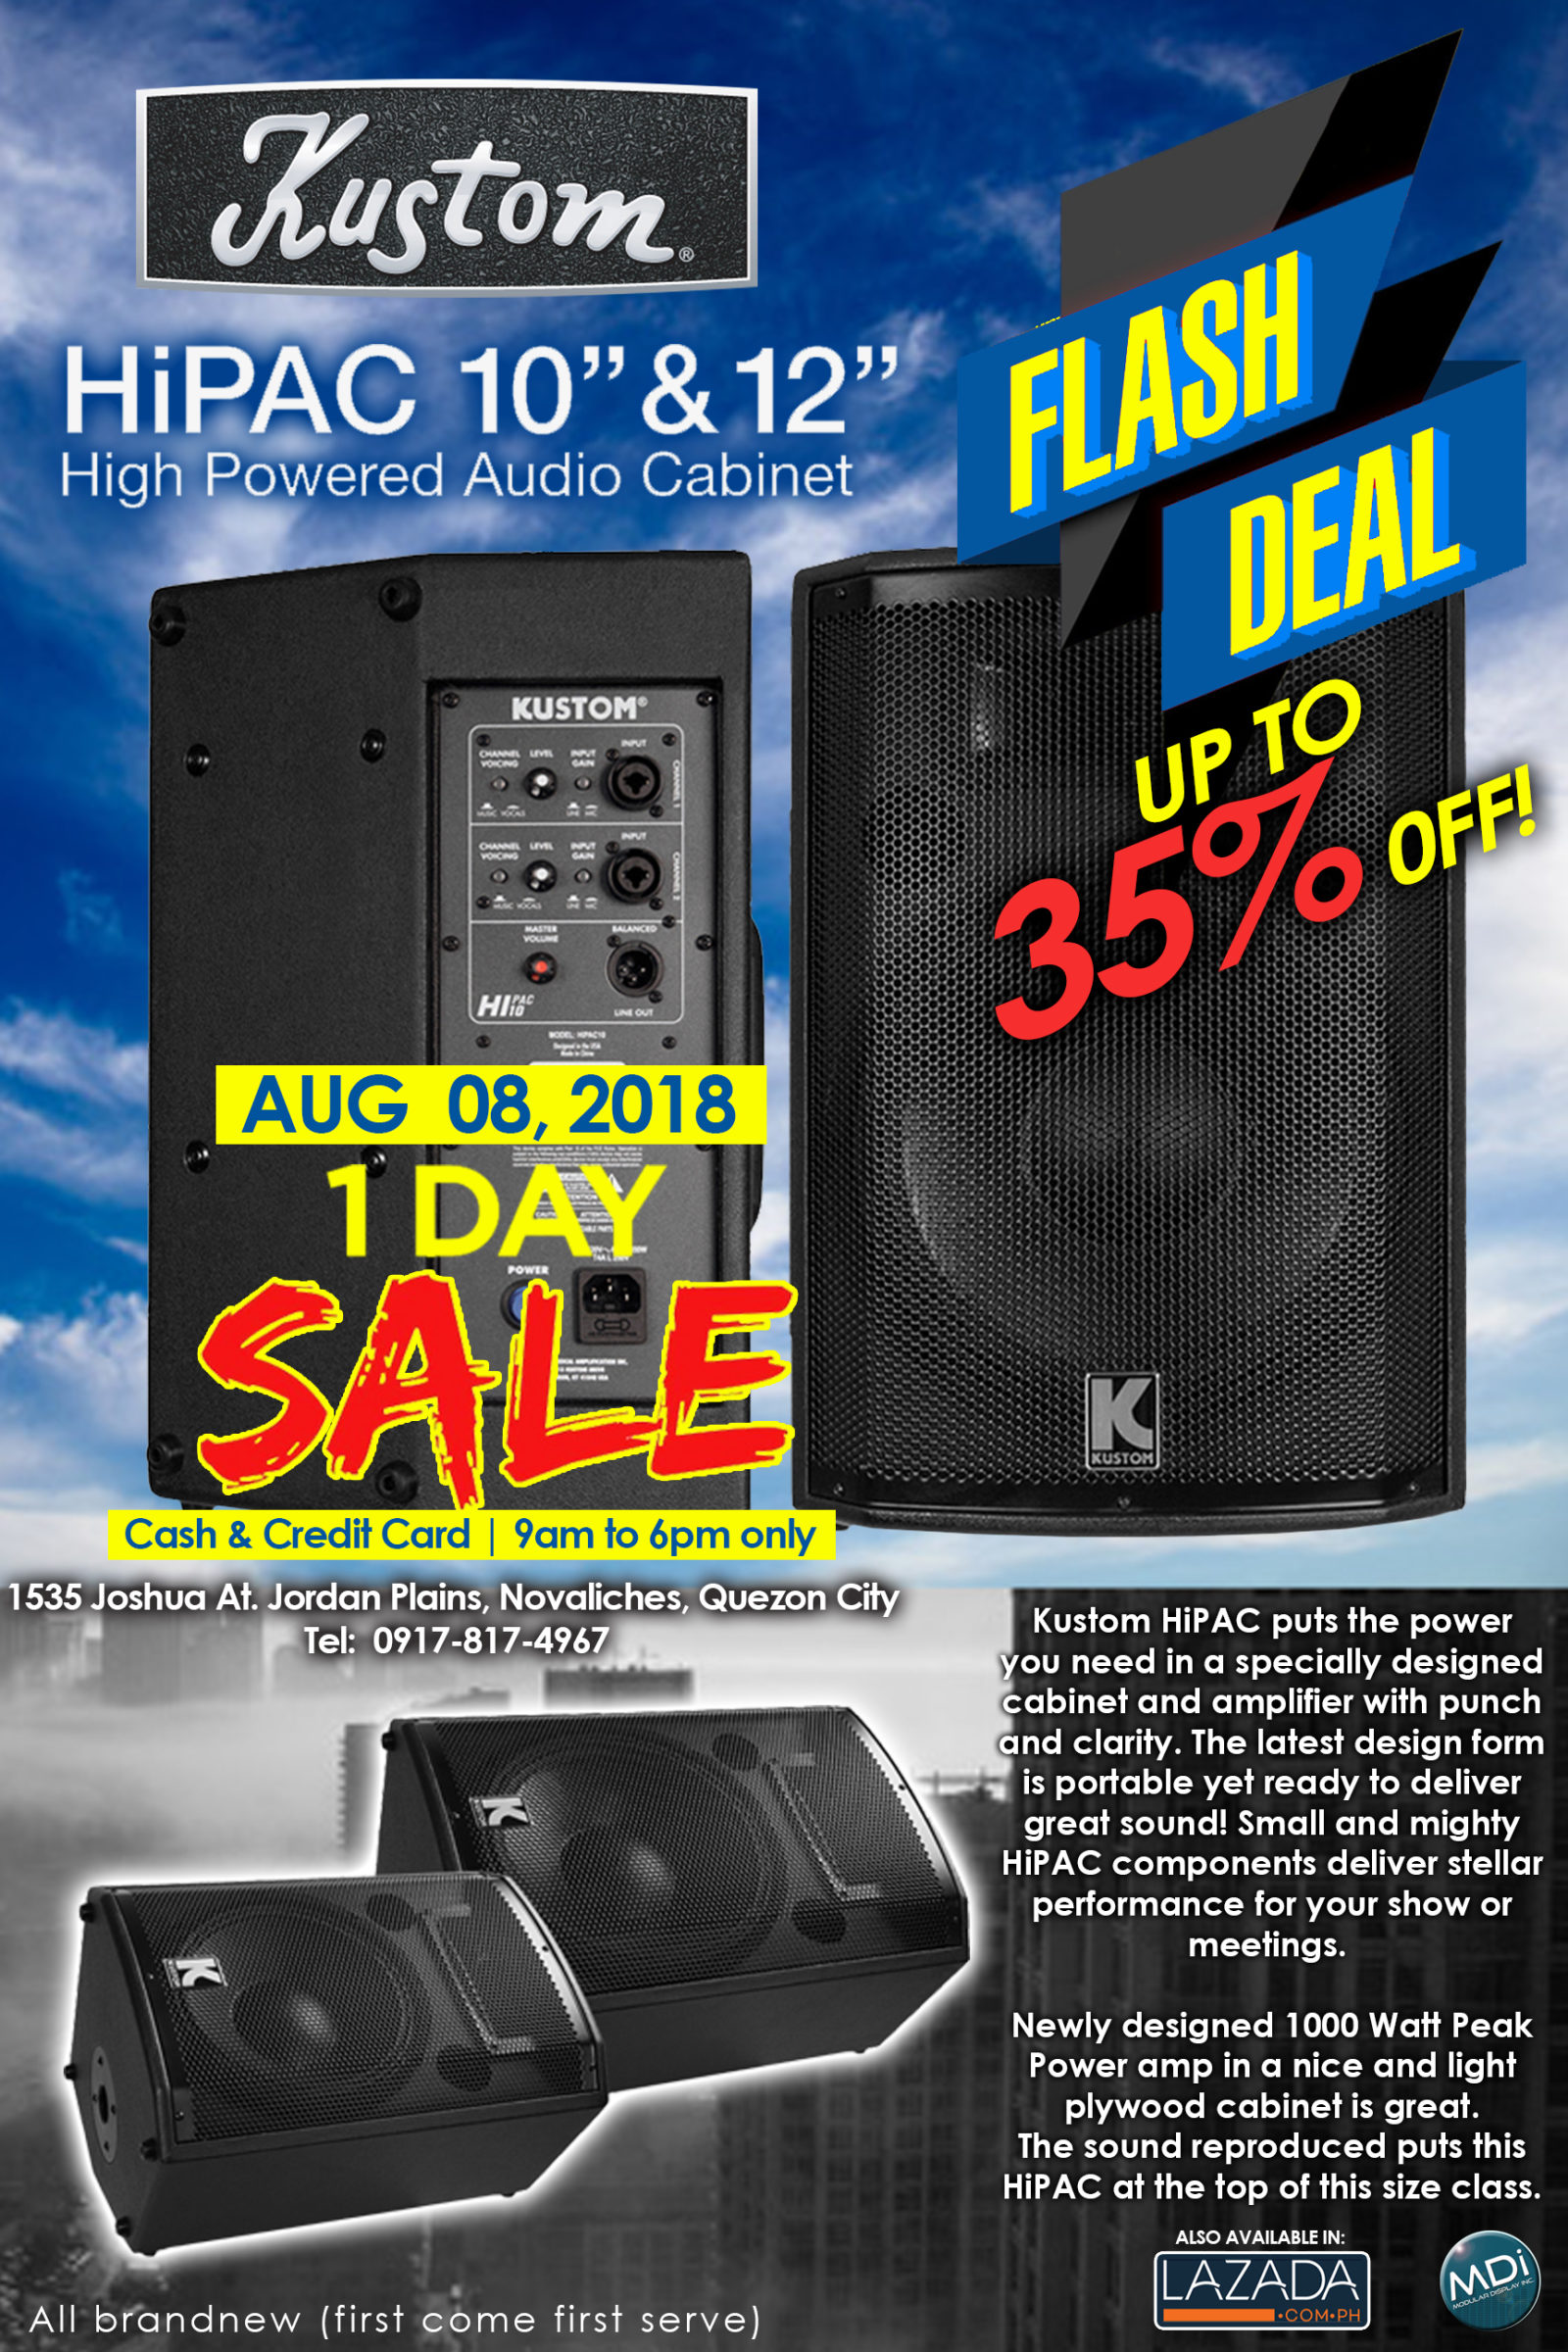 HIPAC FLASH DEAL